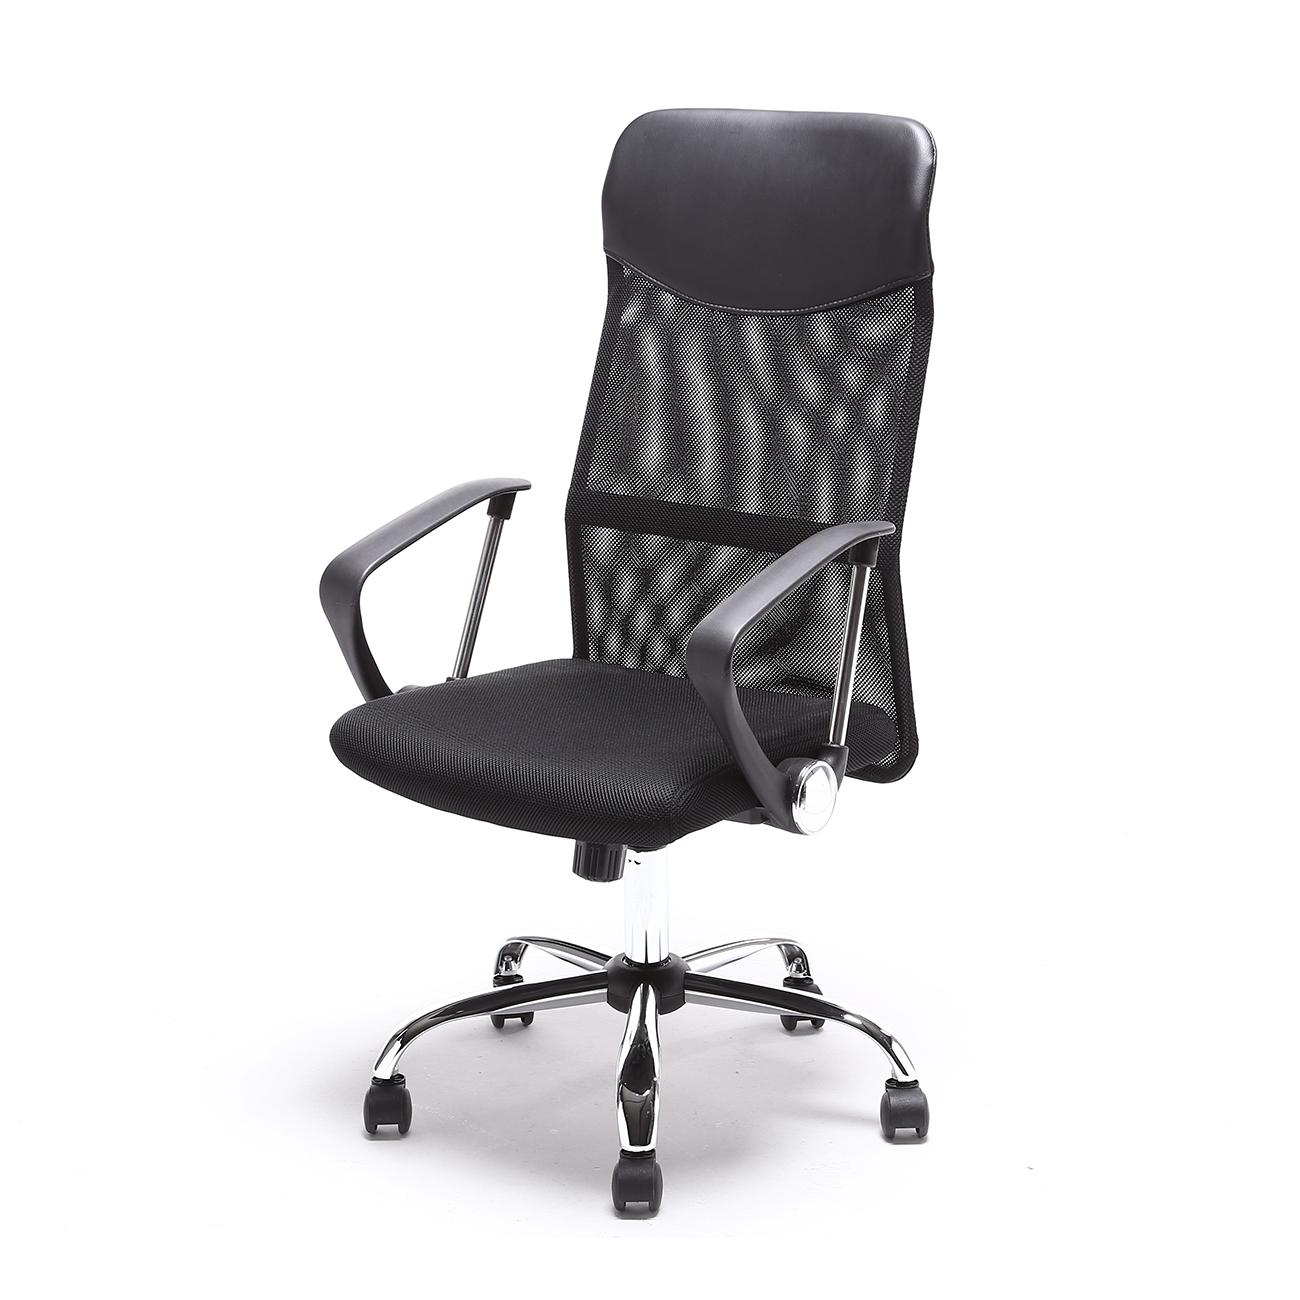 high quality office chairs ergonomic clear ghost chair back pu leather executive desk